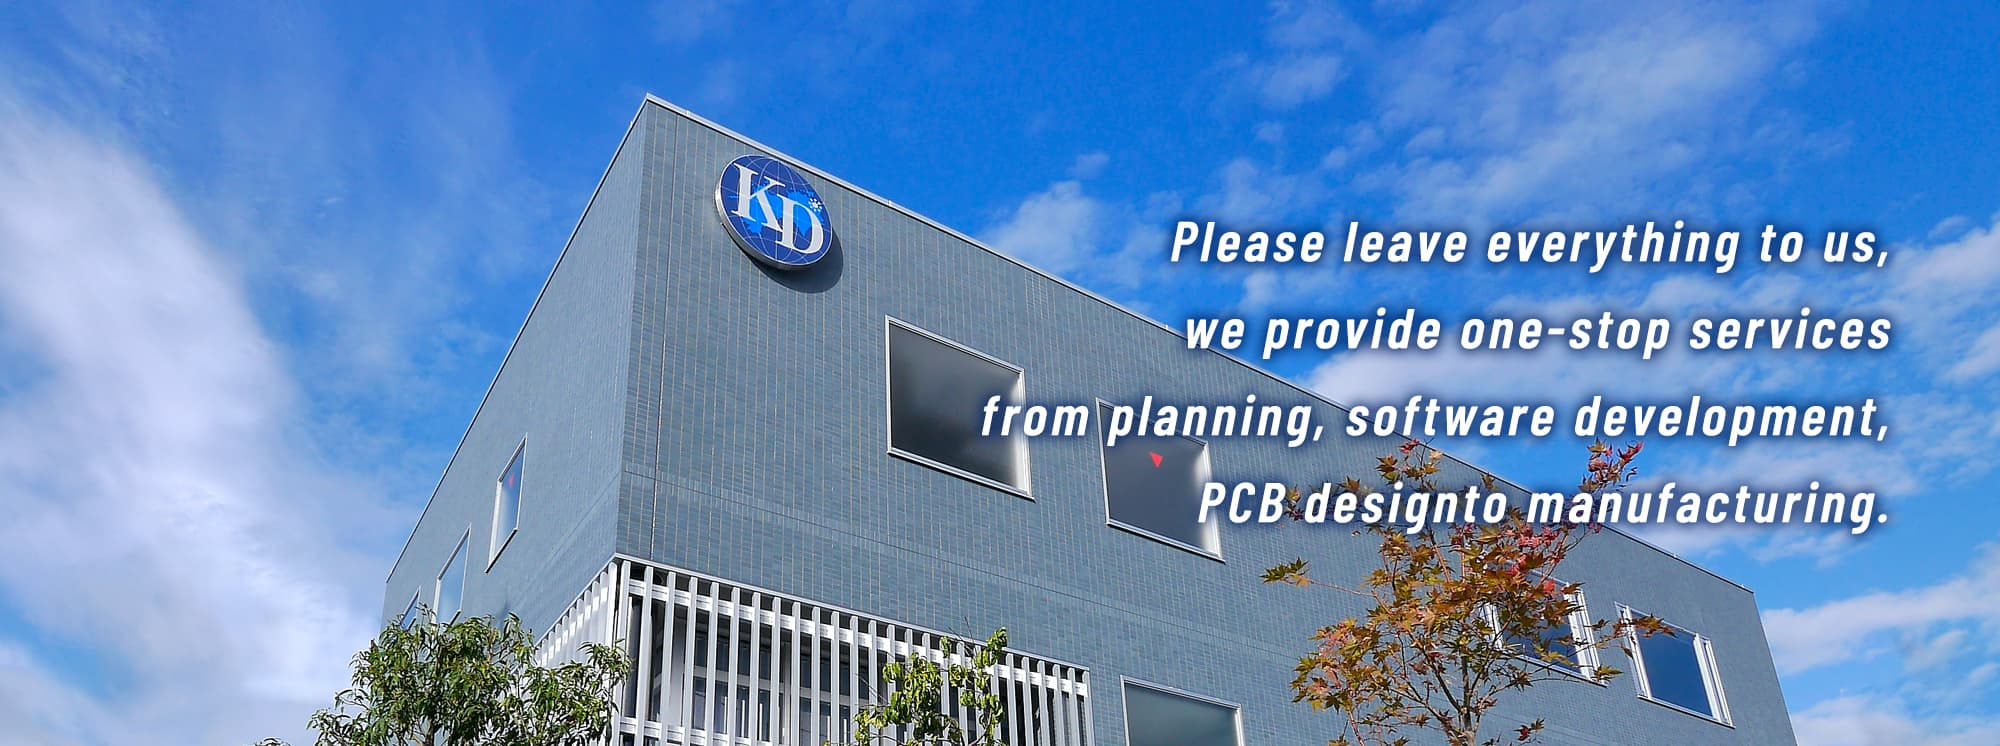 Please leave everything to us, we provide one-stop services from planning, software development, PCB design to manufacturing.